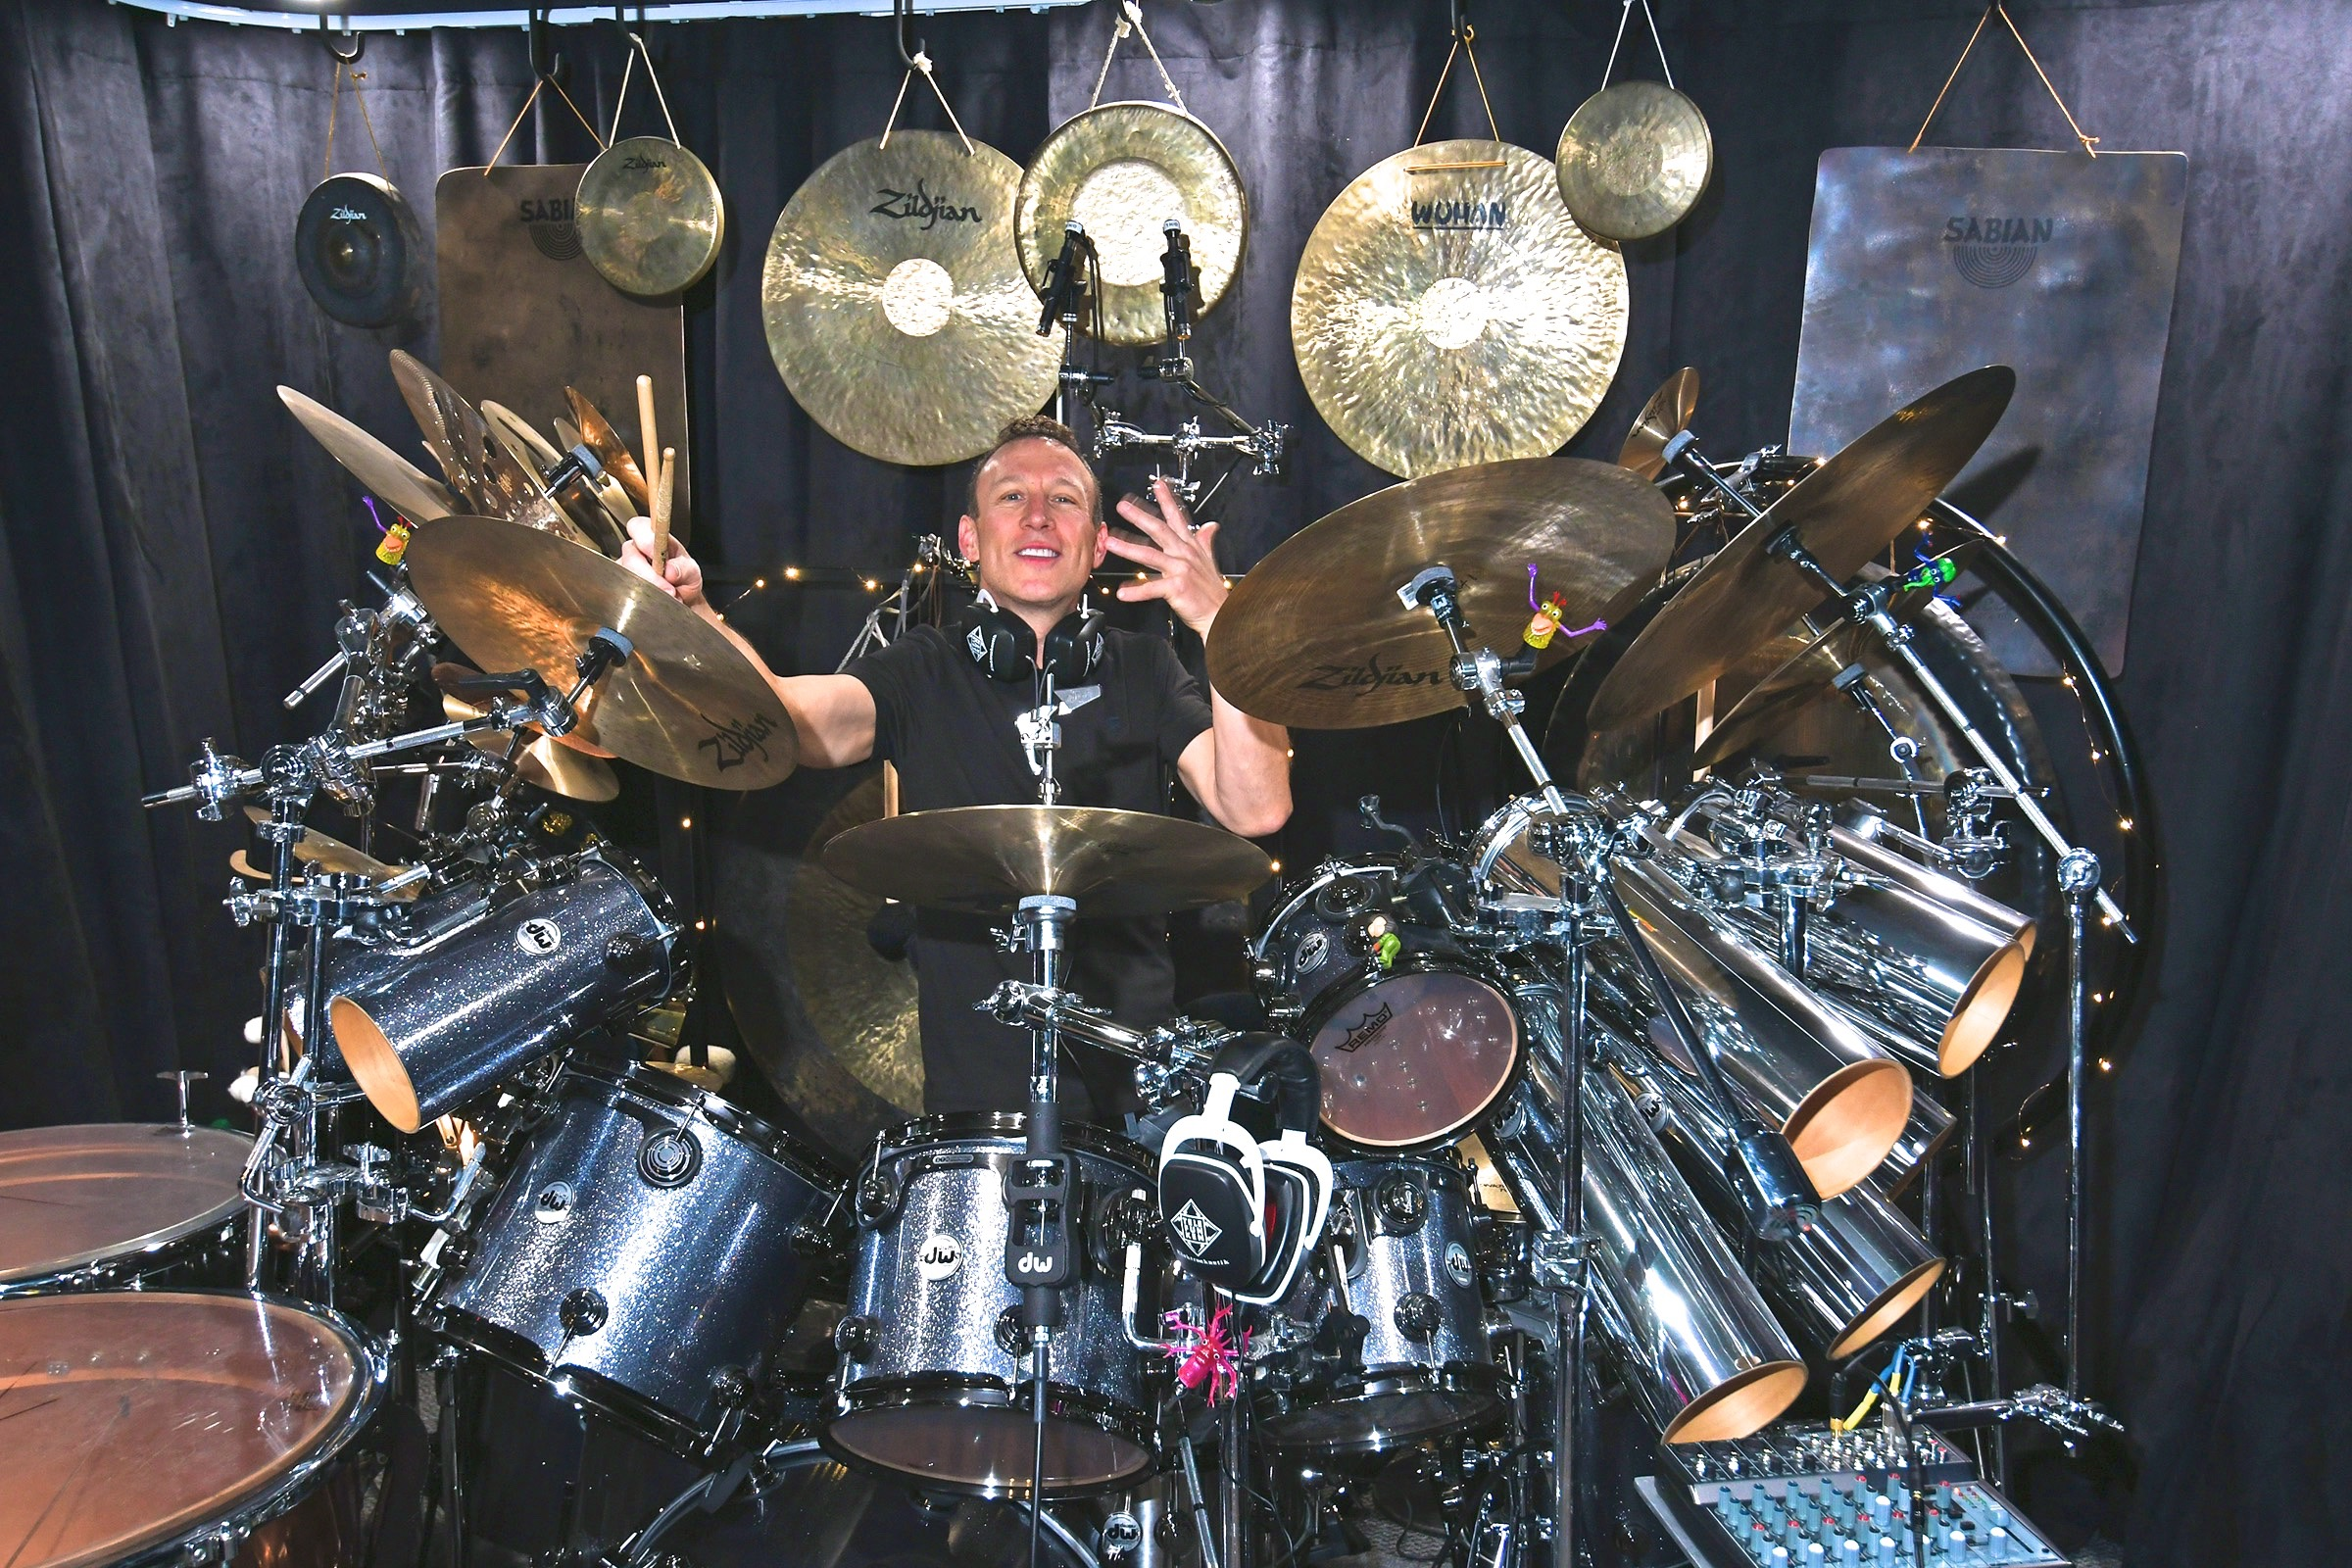 Pictured is Stephen Perkins with his drum kit and his TELEFUNKEN mics and headphones. Photo by David Goggin